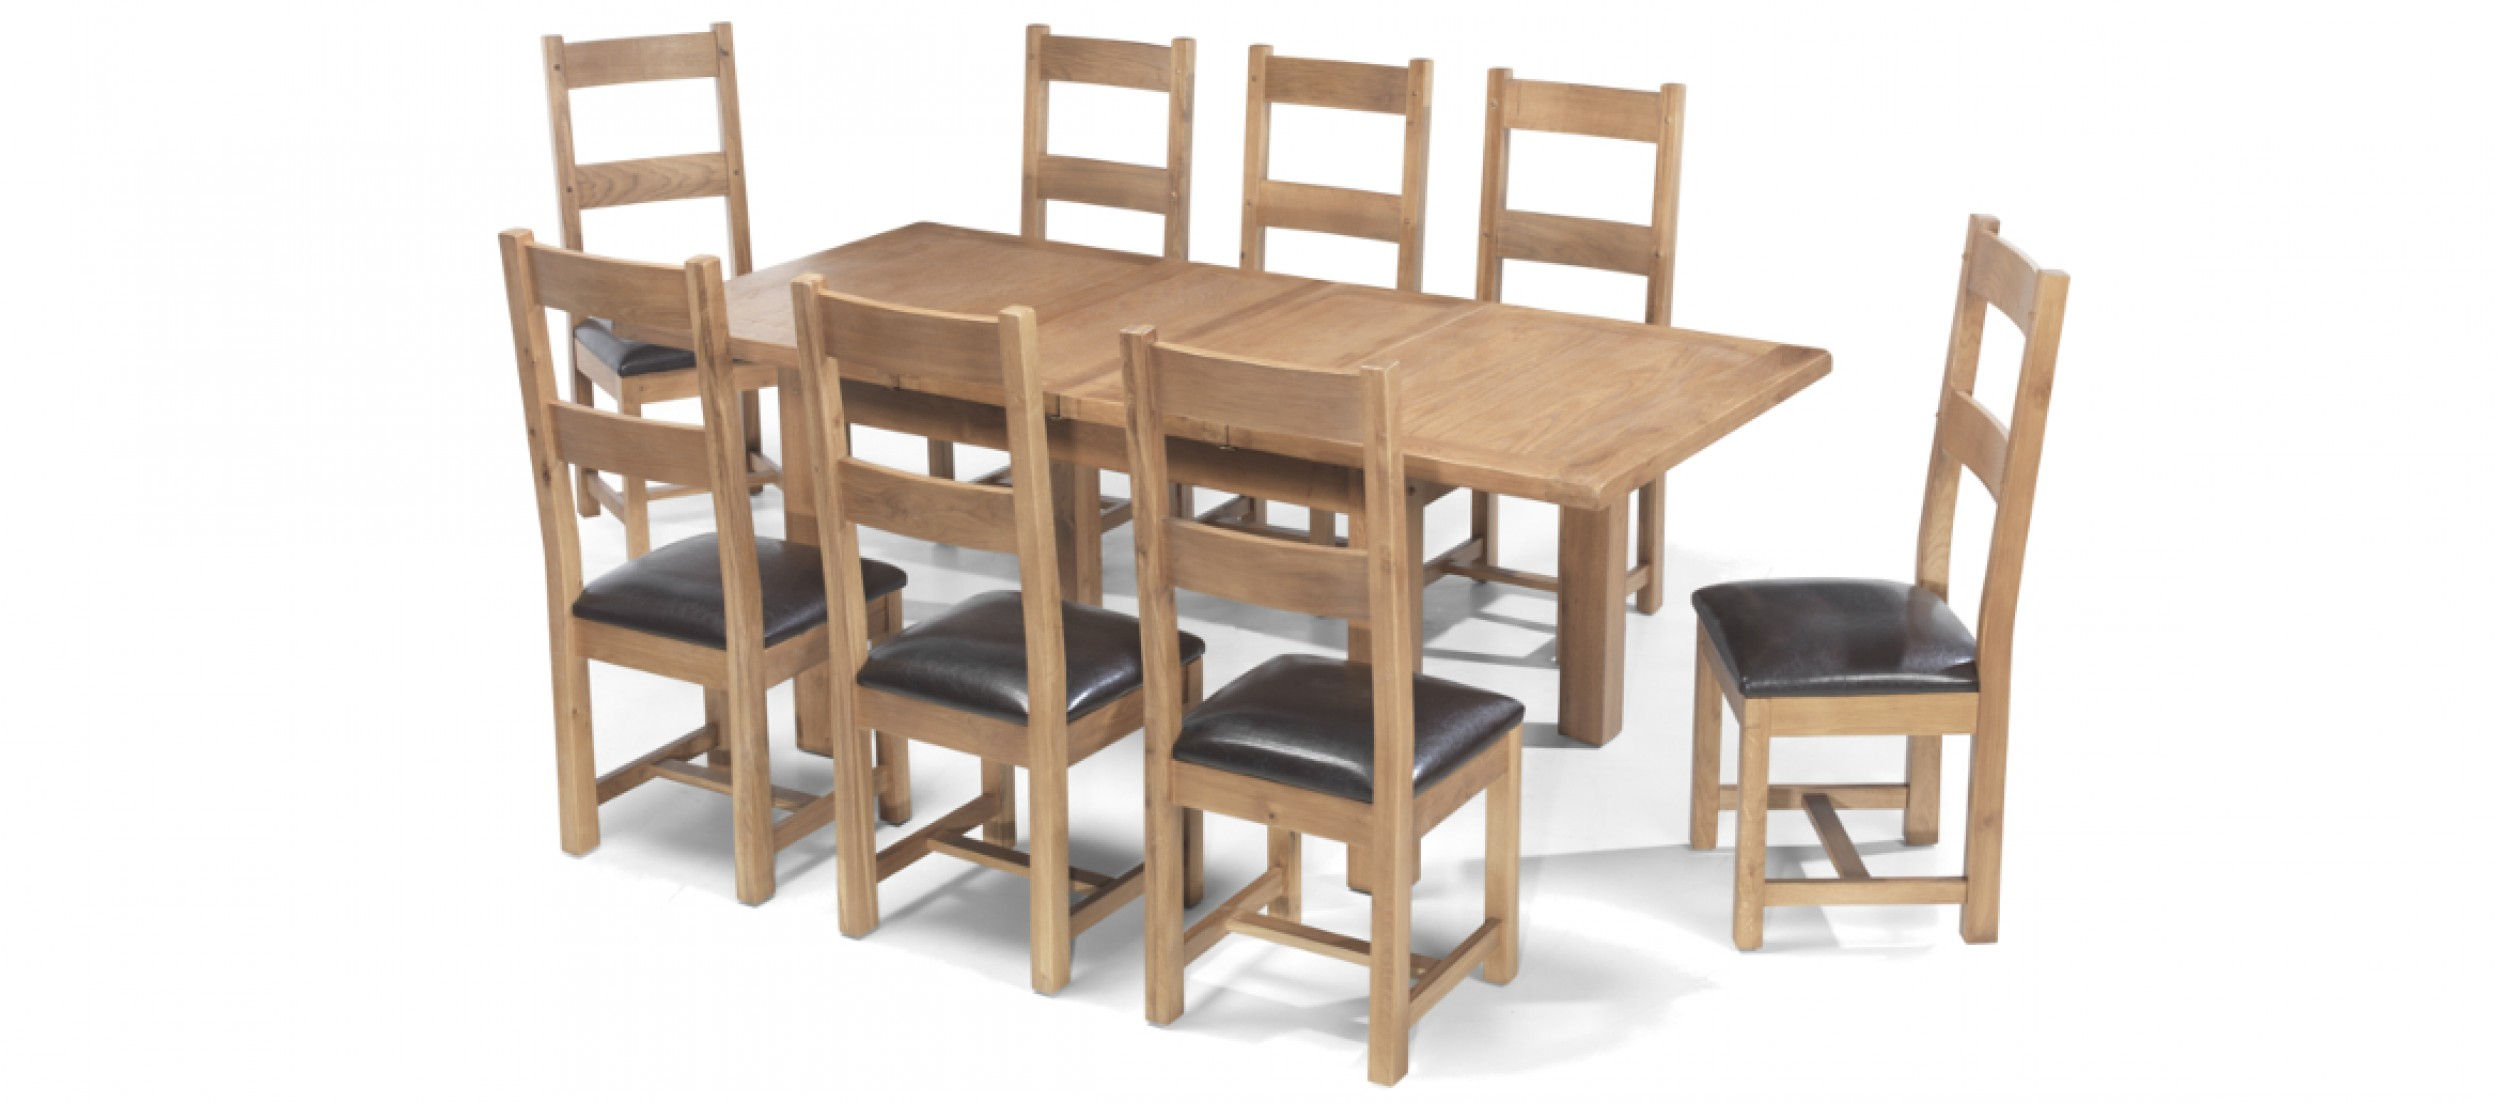 Dining Table 8 Chairs Rustic Oak 132 198 Cm Extending Dining Table And 8 Chairs